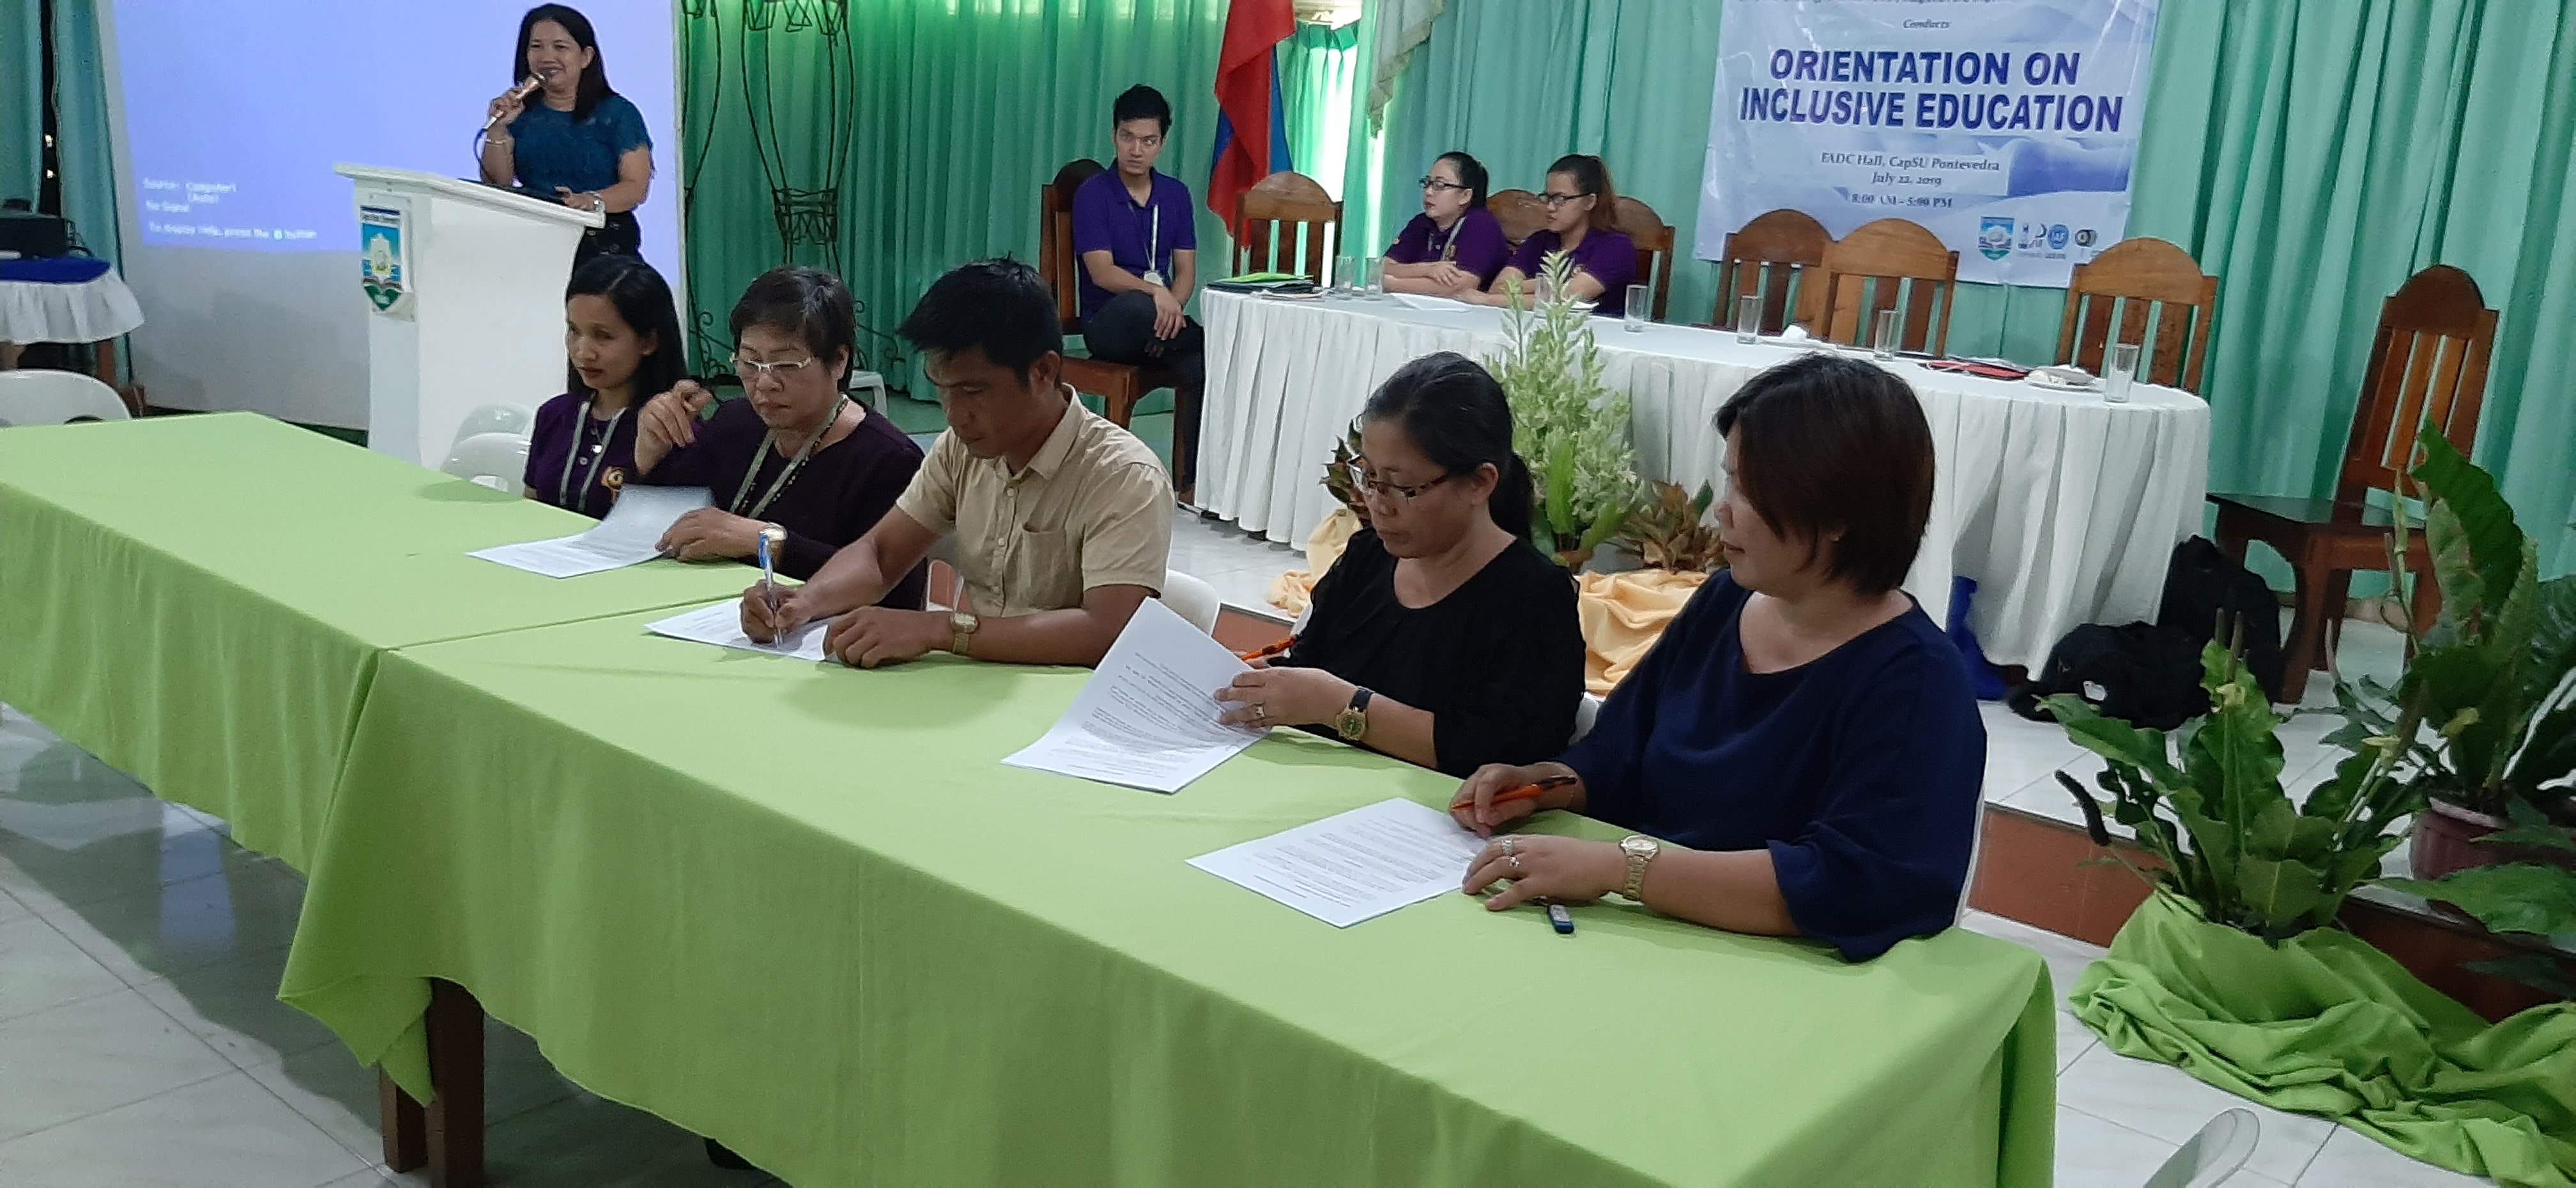 Image contains Ms. Lourdes Borgonia (ATRIEV's program coordinator), Dr. May Dumapig (campus administrator), Dr. Judel Protacio (dean of College of Education, Arts and Sciences), Ms. Sandra Escabarte (CapSU Pontevedra Extension in-charge), and Dr. Matilde Tonel( extension coordinator) signing the MOA contract.